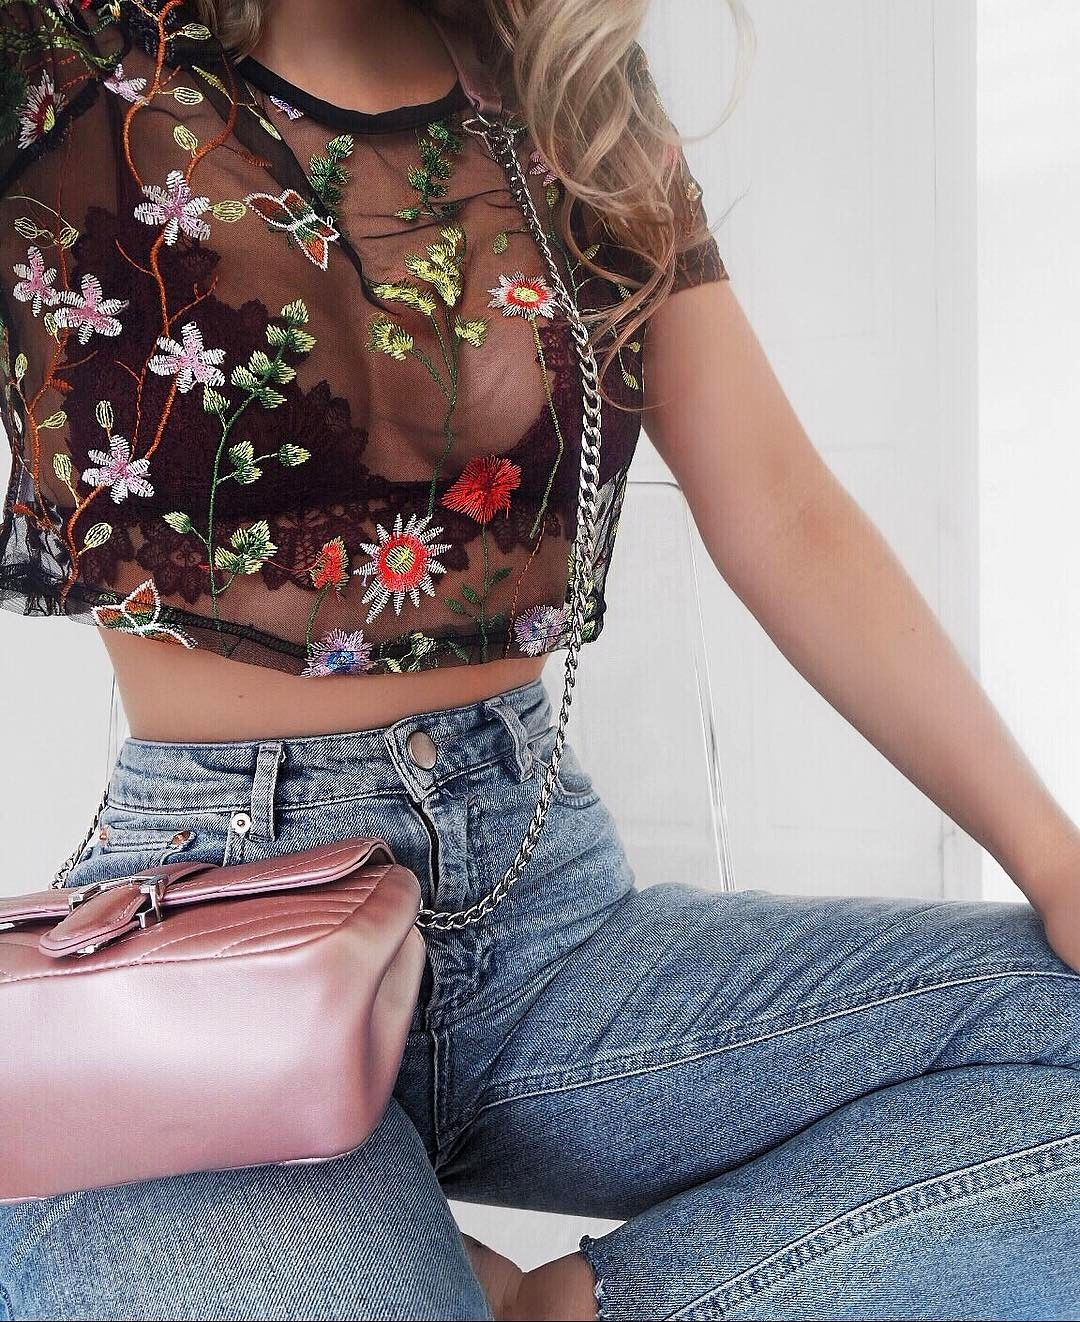 """5,376 mentions J'aime, 70 commentaires - Lydia Rose (@fashioninflux) sur Instagram: """"Happy days when my eBay purchases aren't complete fudge ups... Found this little embroidered top…"""""""